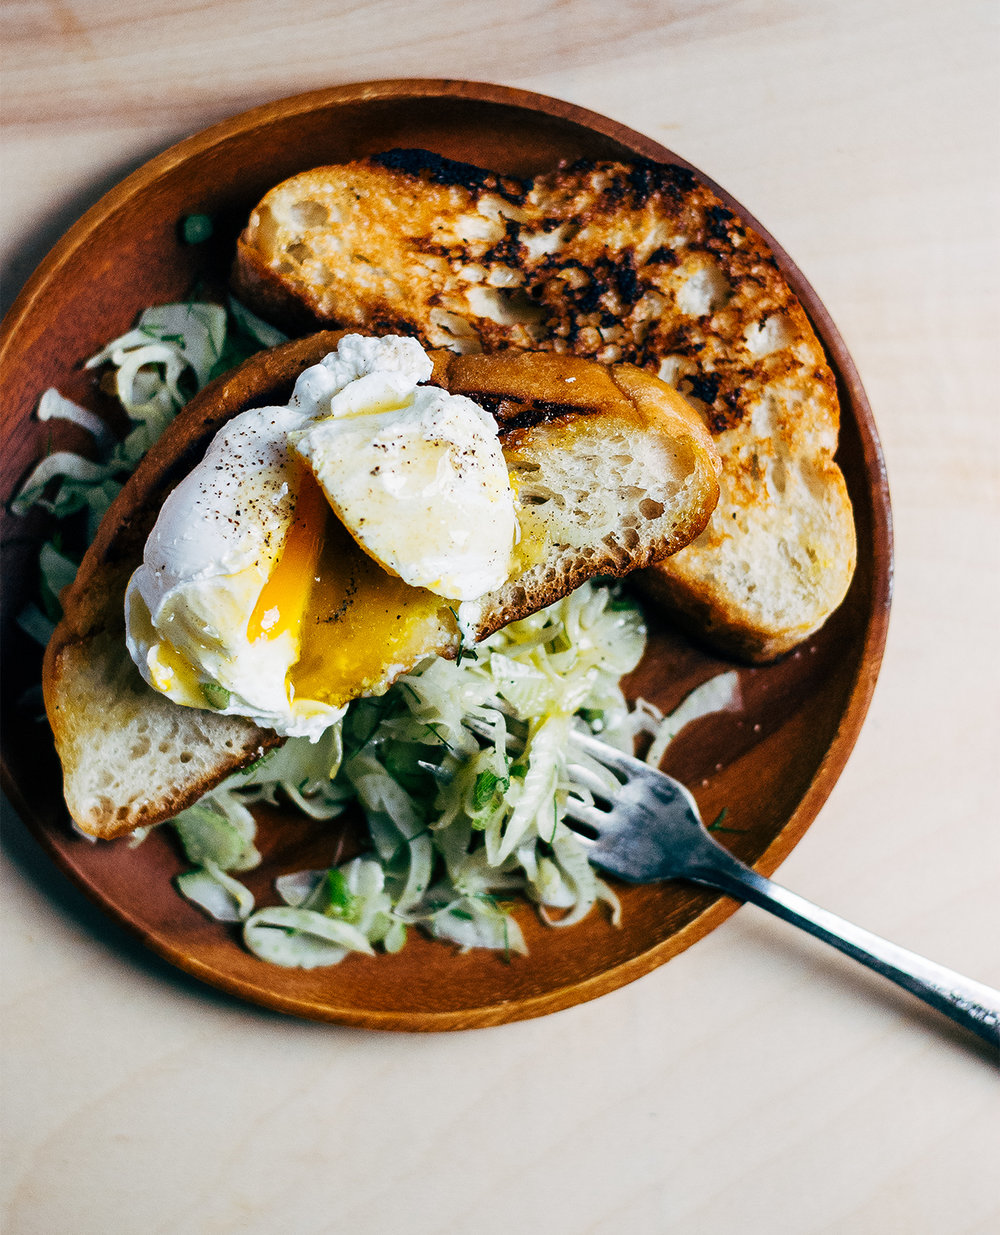 Poached Eggs with Skillet Toast